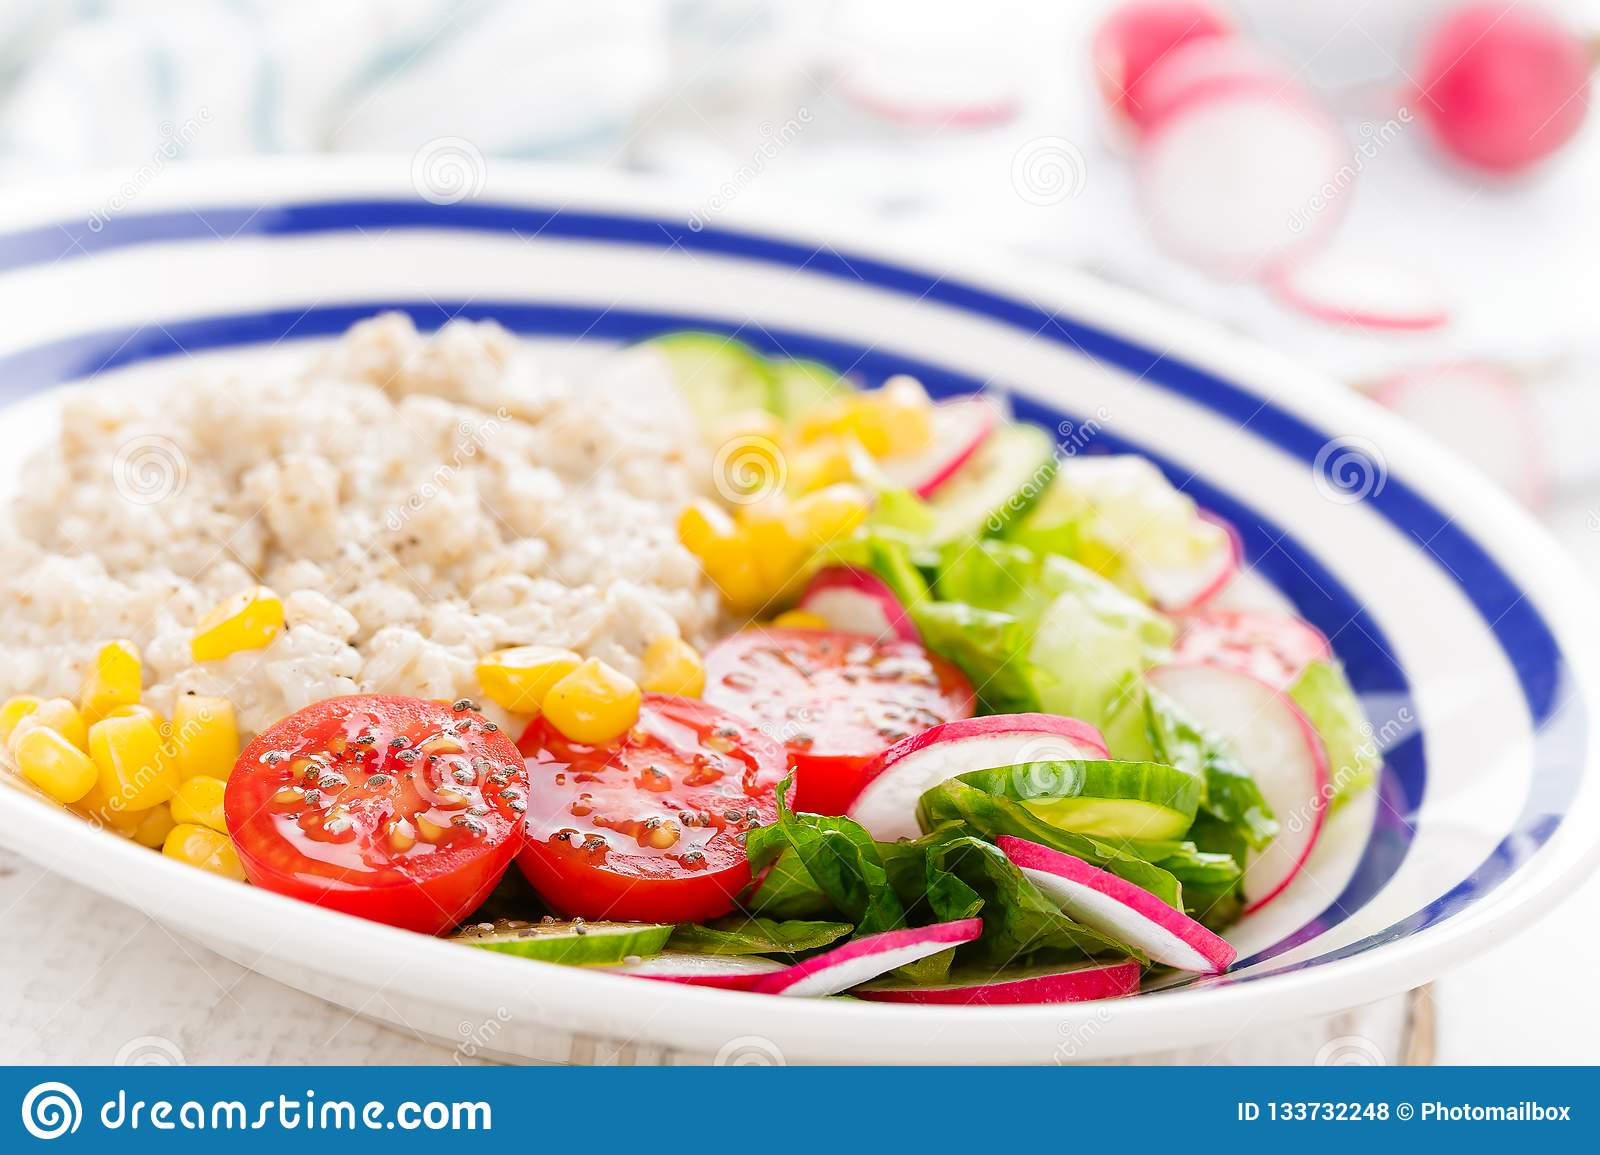 Oatmeal porridge with vegetable salad of fresh tomatoes, corn, cucumber and lettuce. Light, healthy and tasty dietary breakfast